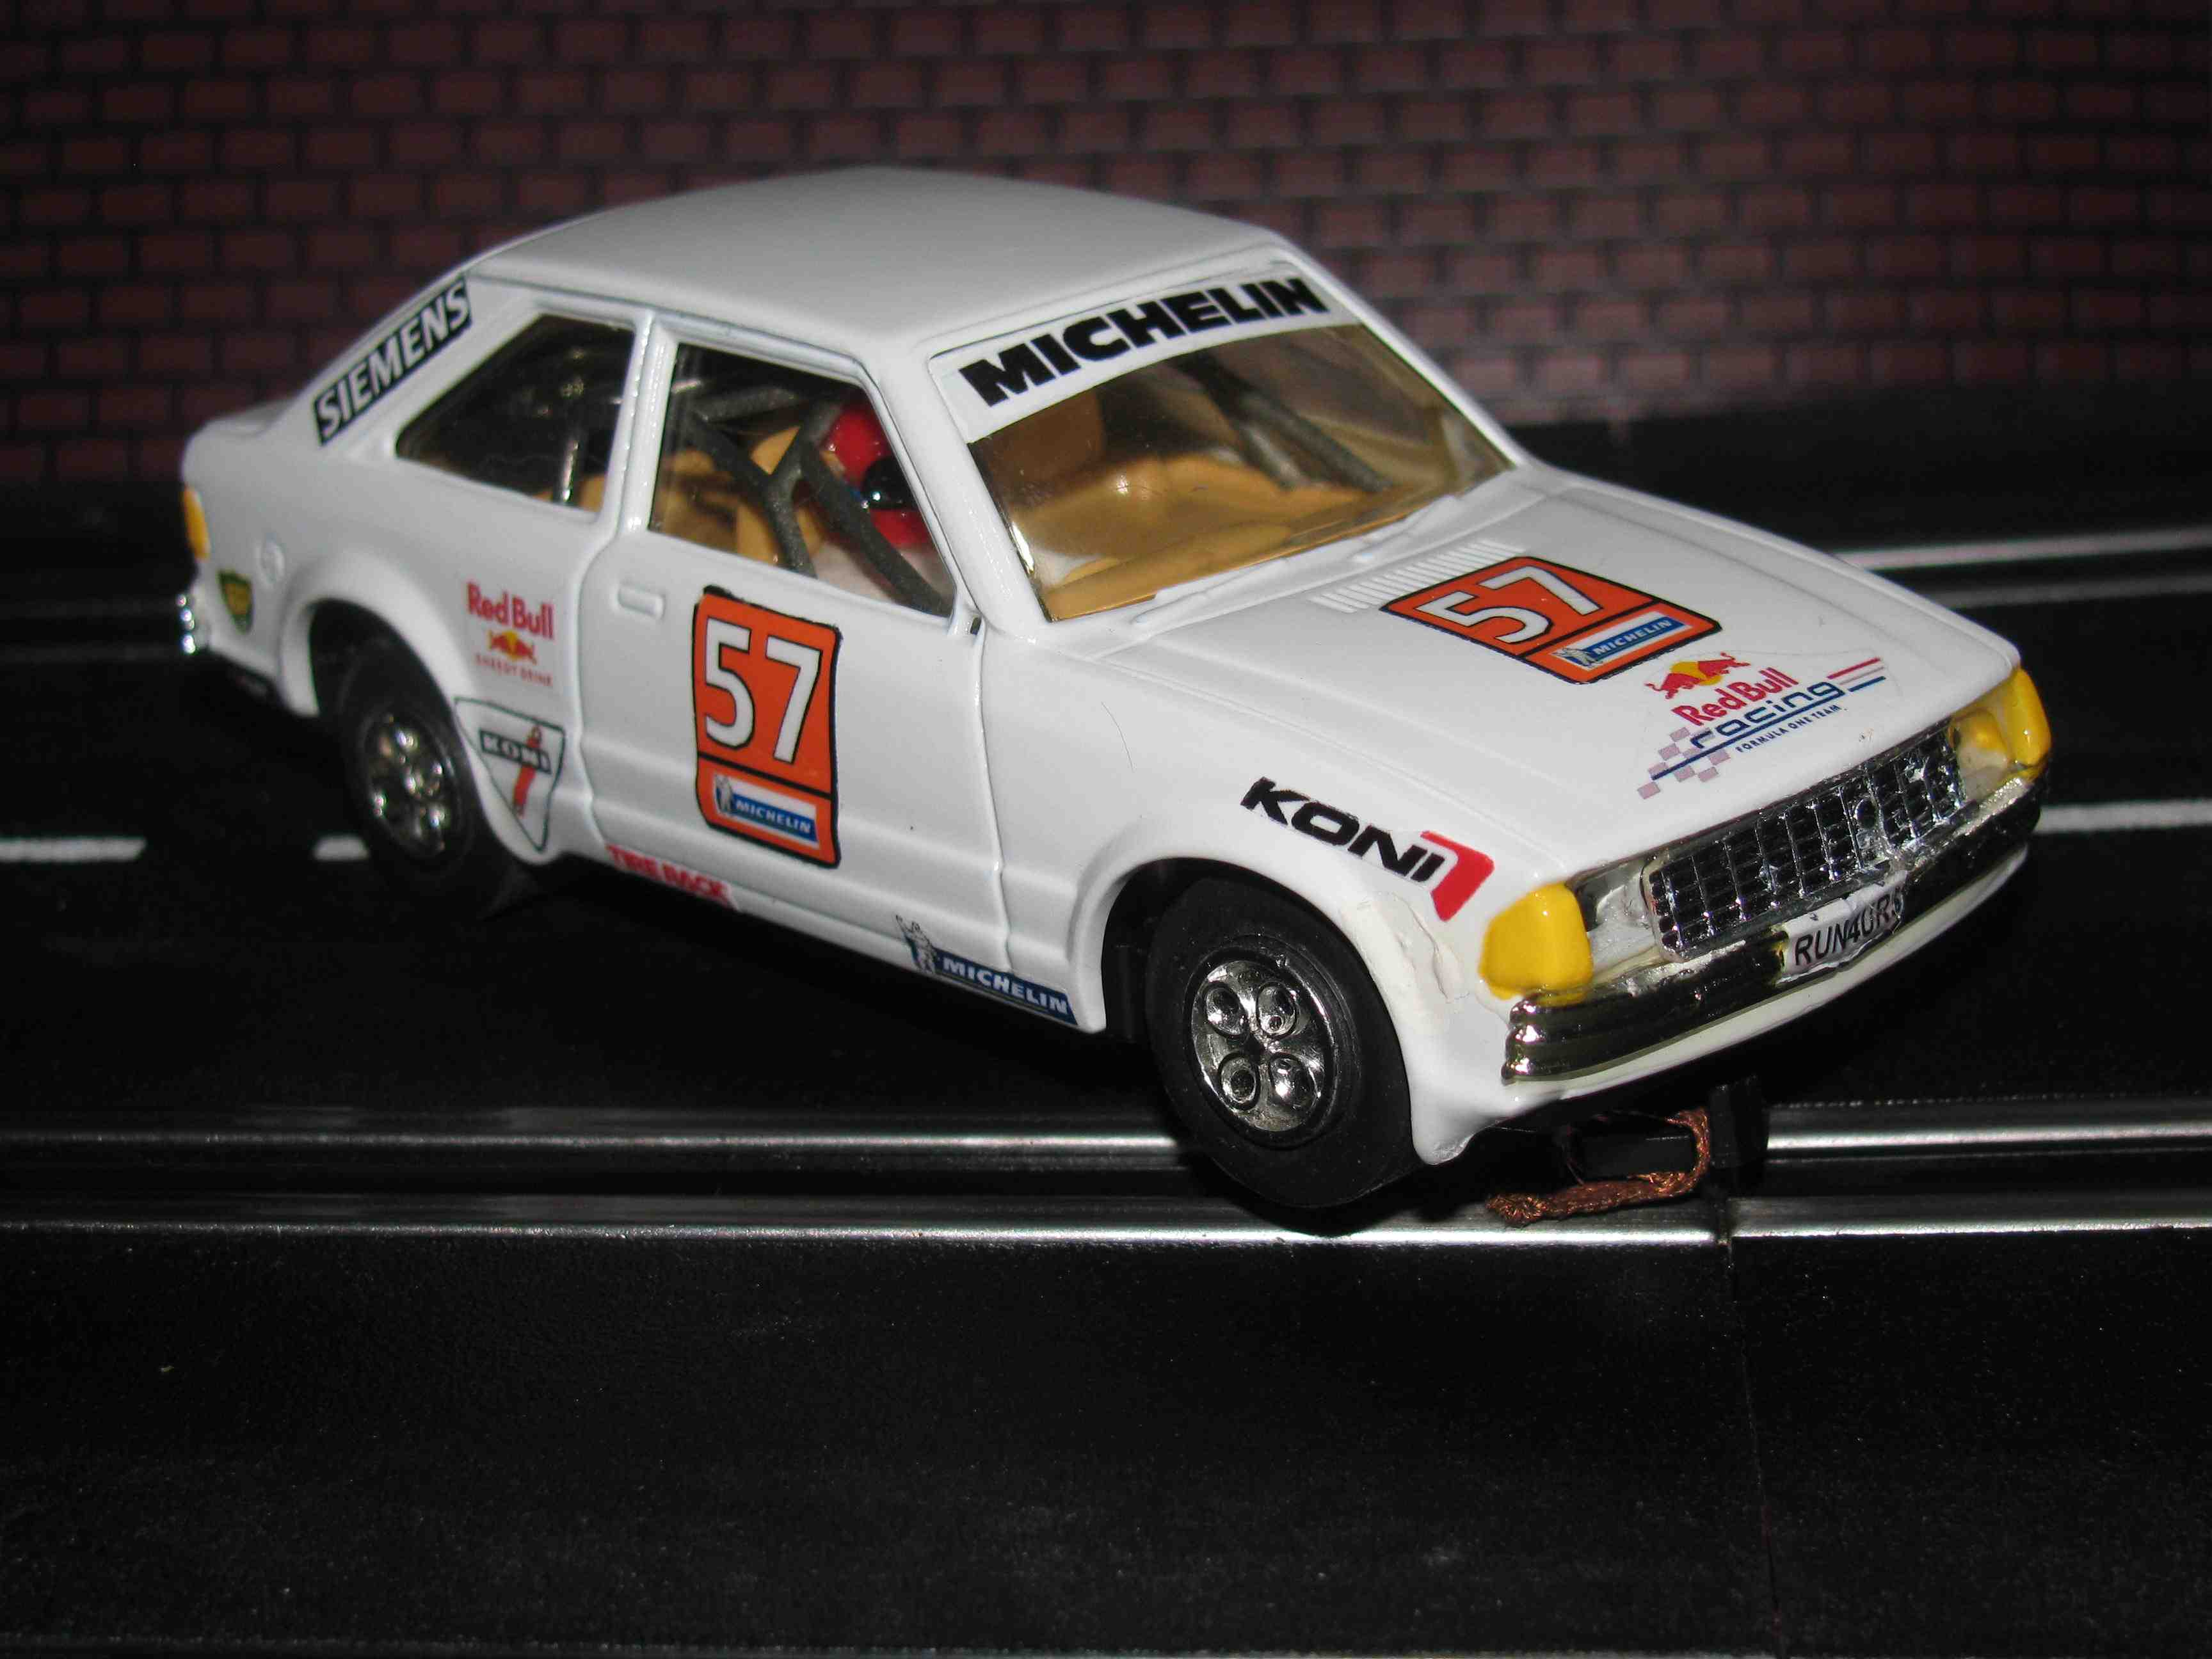 Scalextric - Ford Escort Xr4ti Rally Car - Made in Great Britain